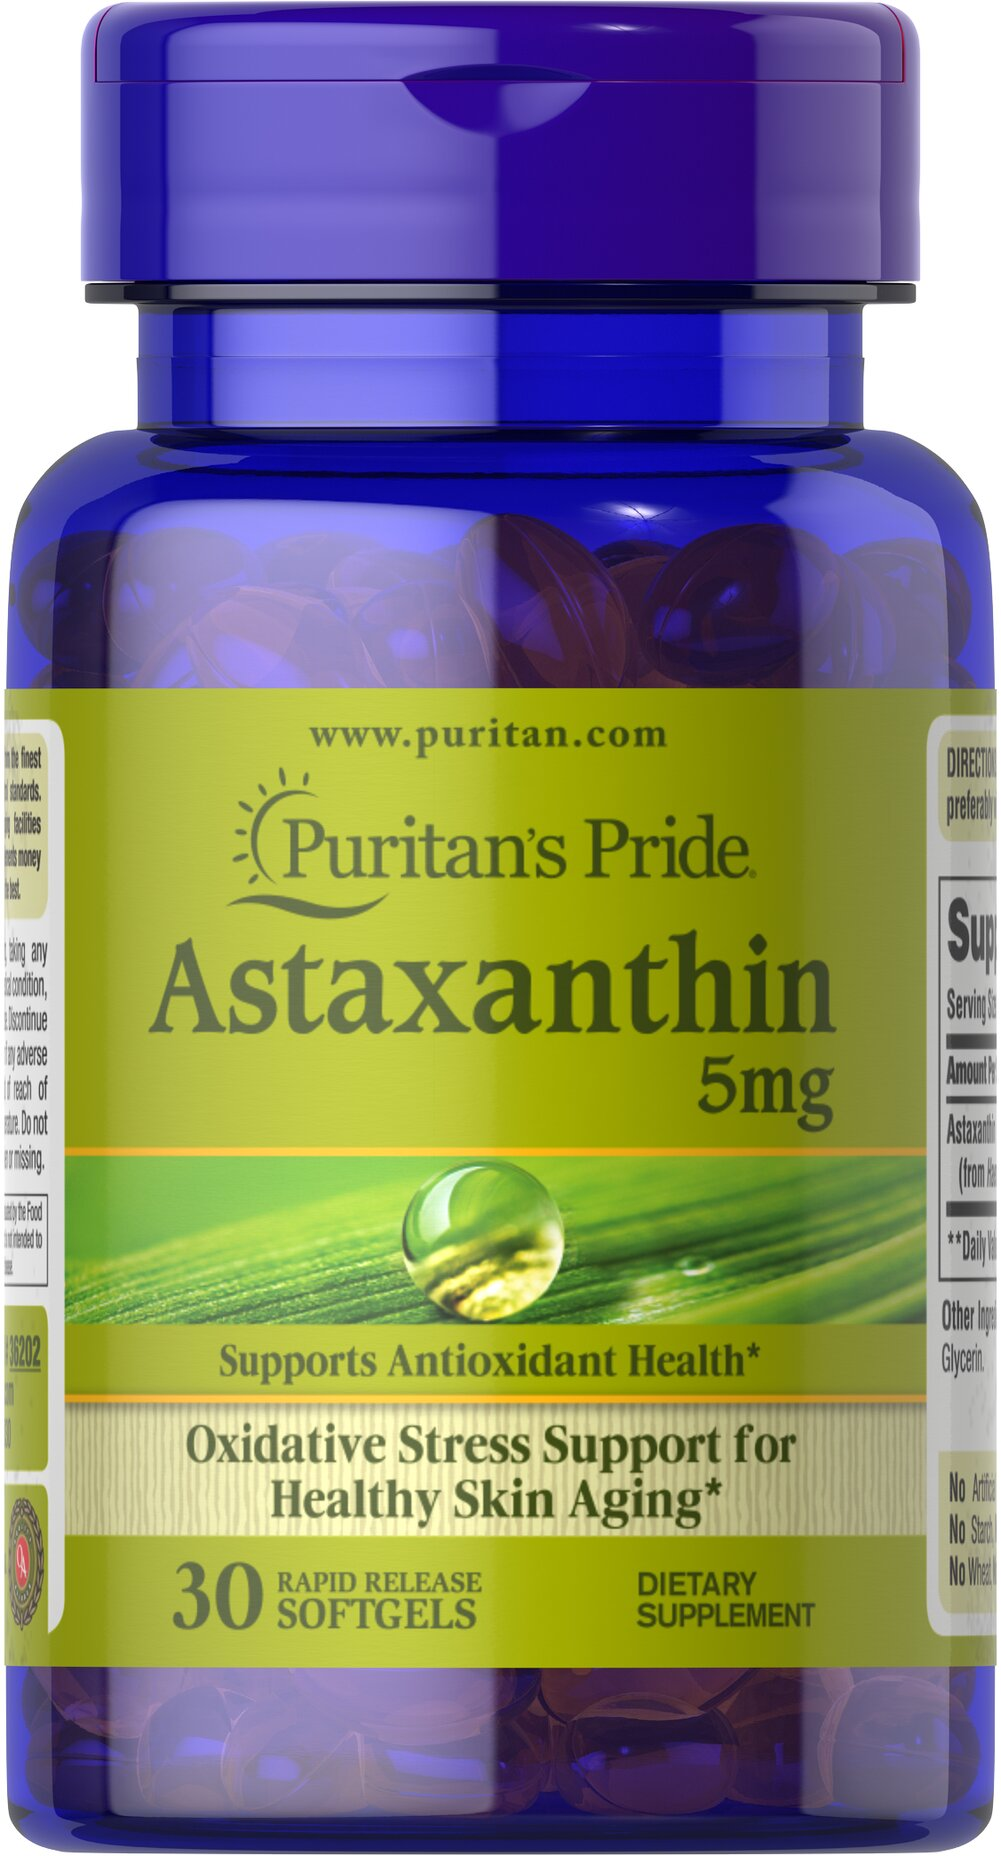 Astaxanthin 5 mg <p>Powerful Antioxidant**</p><p>Suited for Stressful Lifestyles**</p><p>Astaxanthin promotes antioxidant health, which helps fight the cell damaging free radicals that can lead to oxidative stress which may contribute to the premature aging of cells.**</p> 30 Softgels 5 mg $15.99